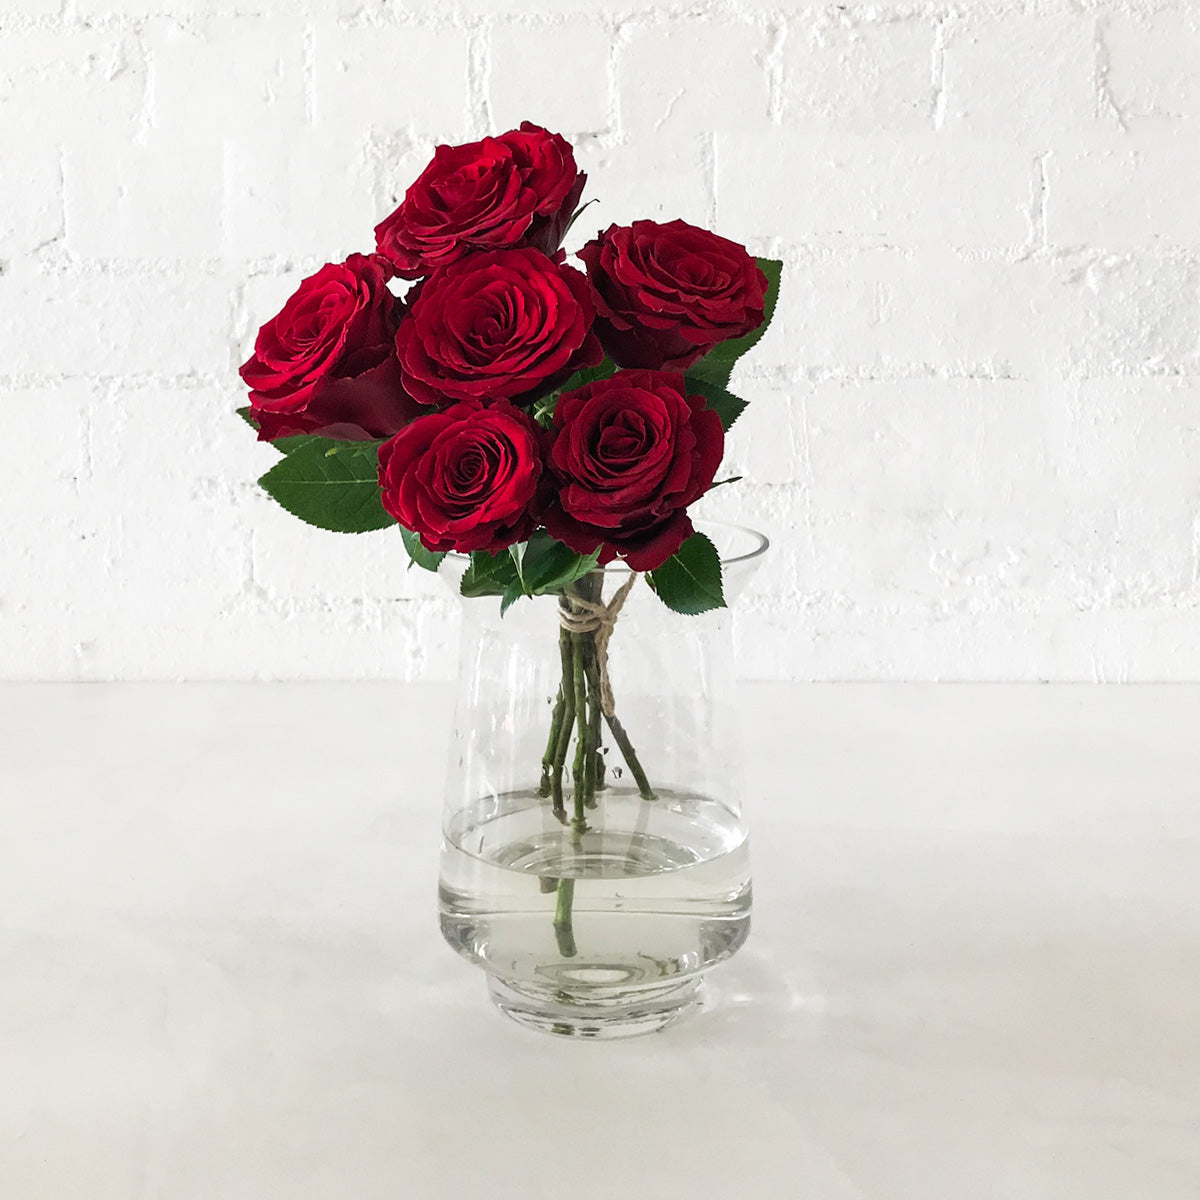 Red Roses - 6 Long Stems